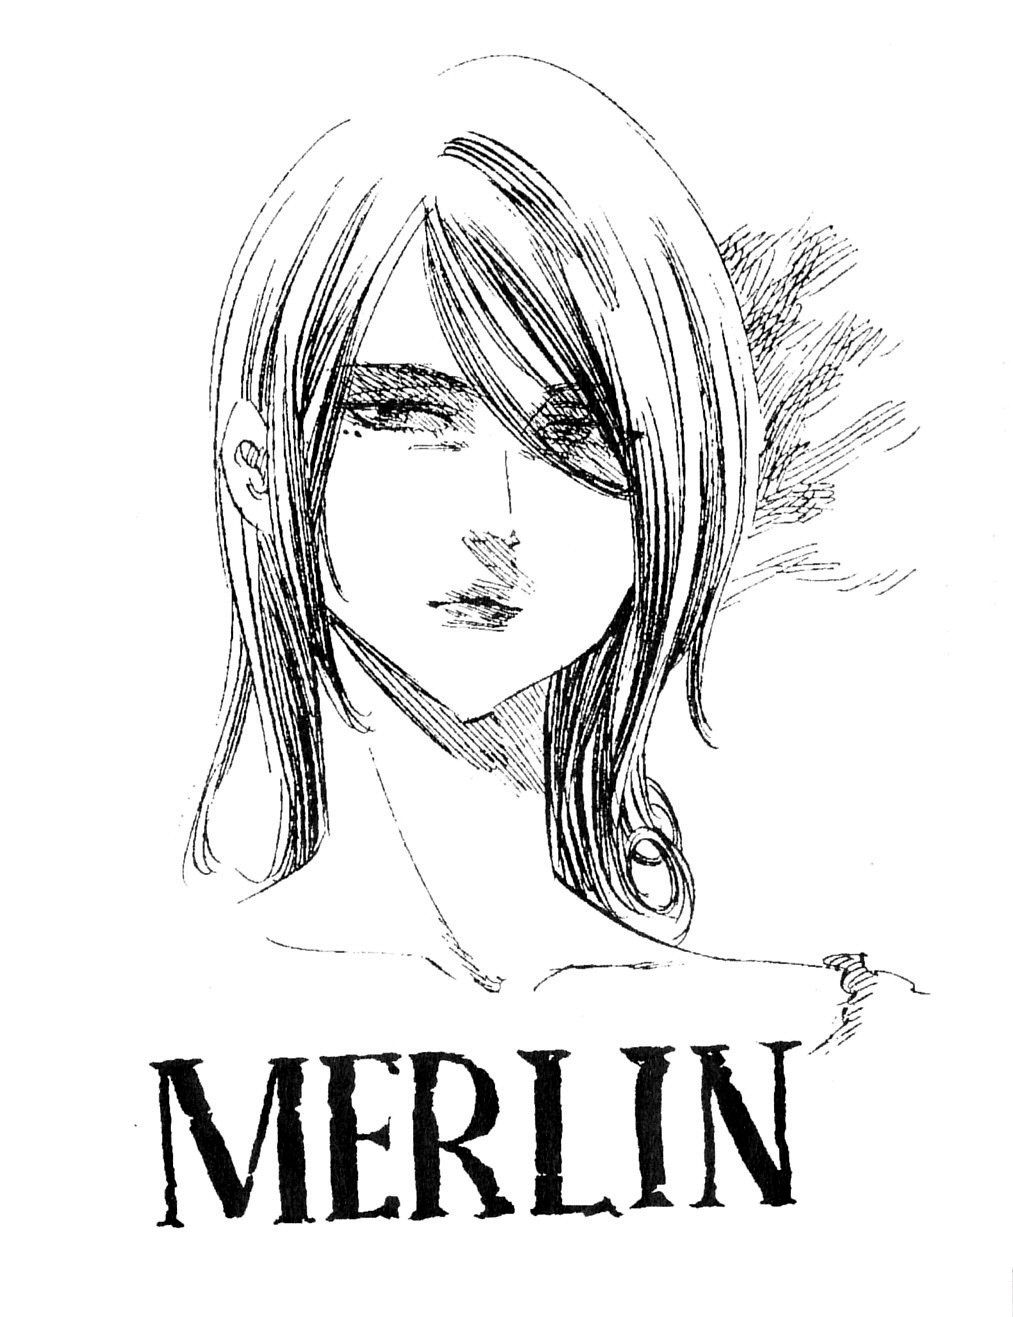 Merlin, she has the coolest powers tho Nanatsu no Taizai